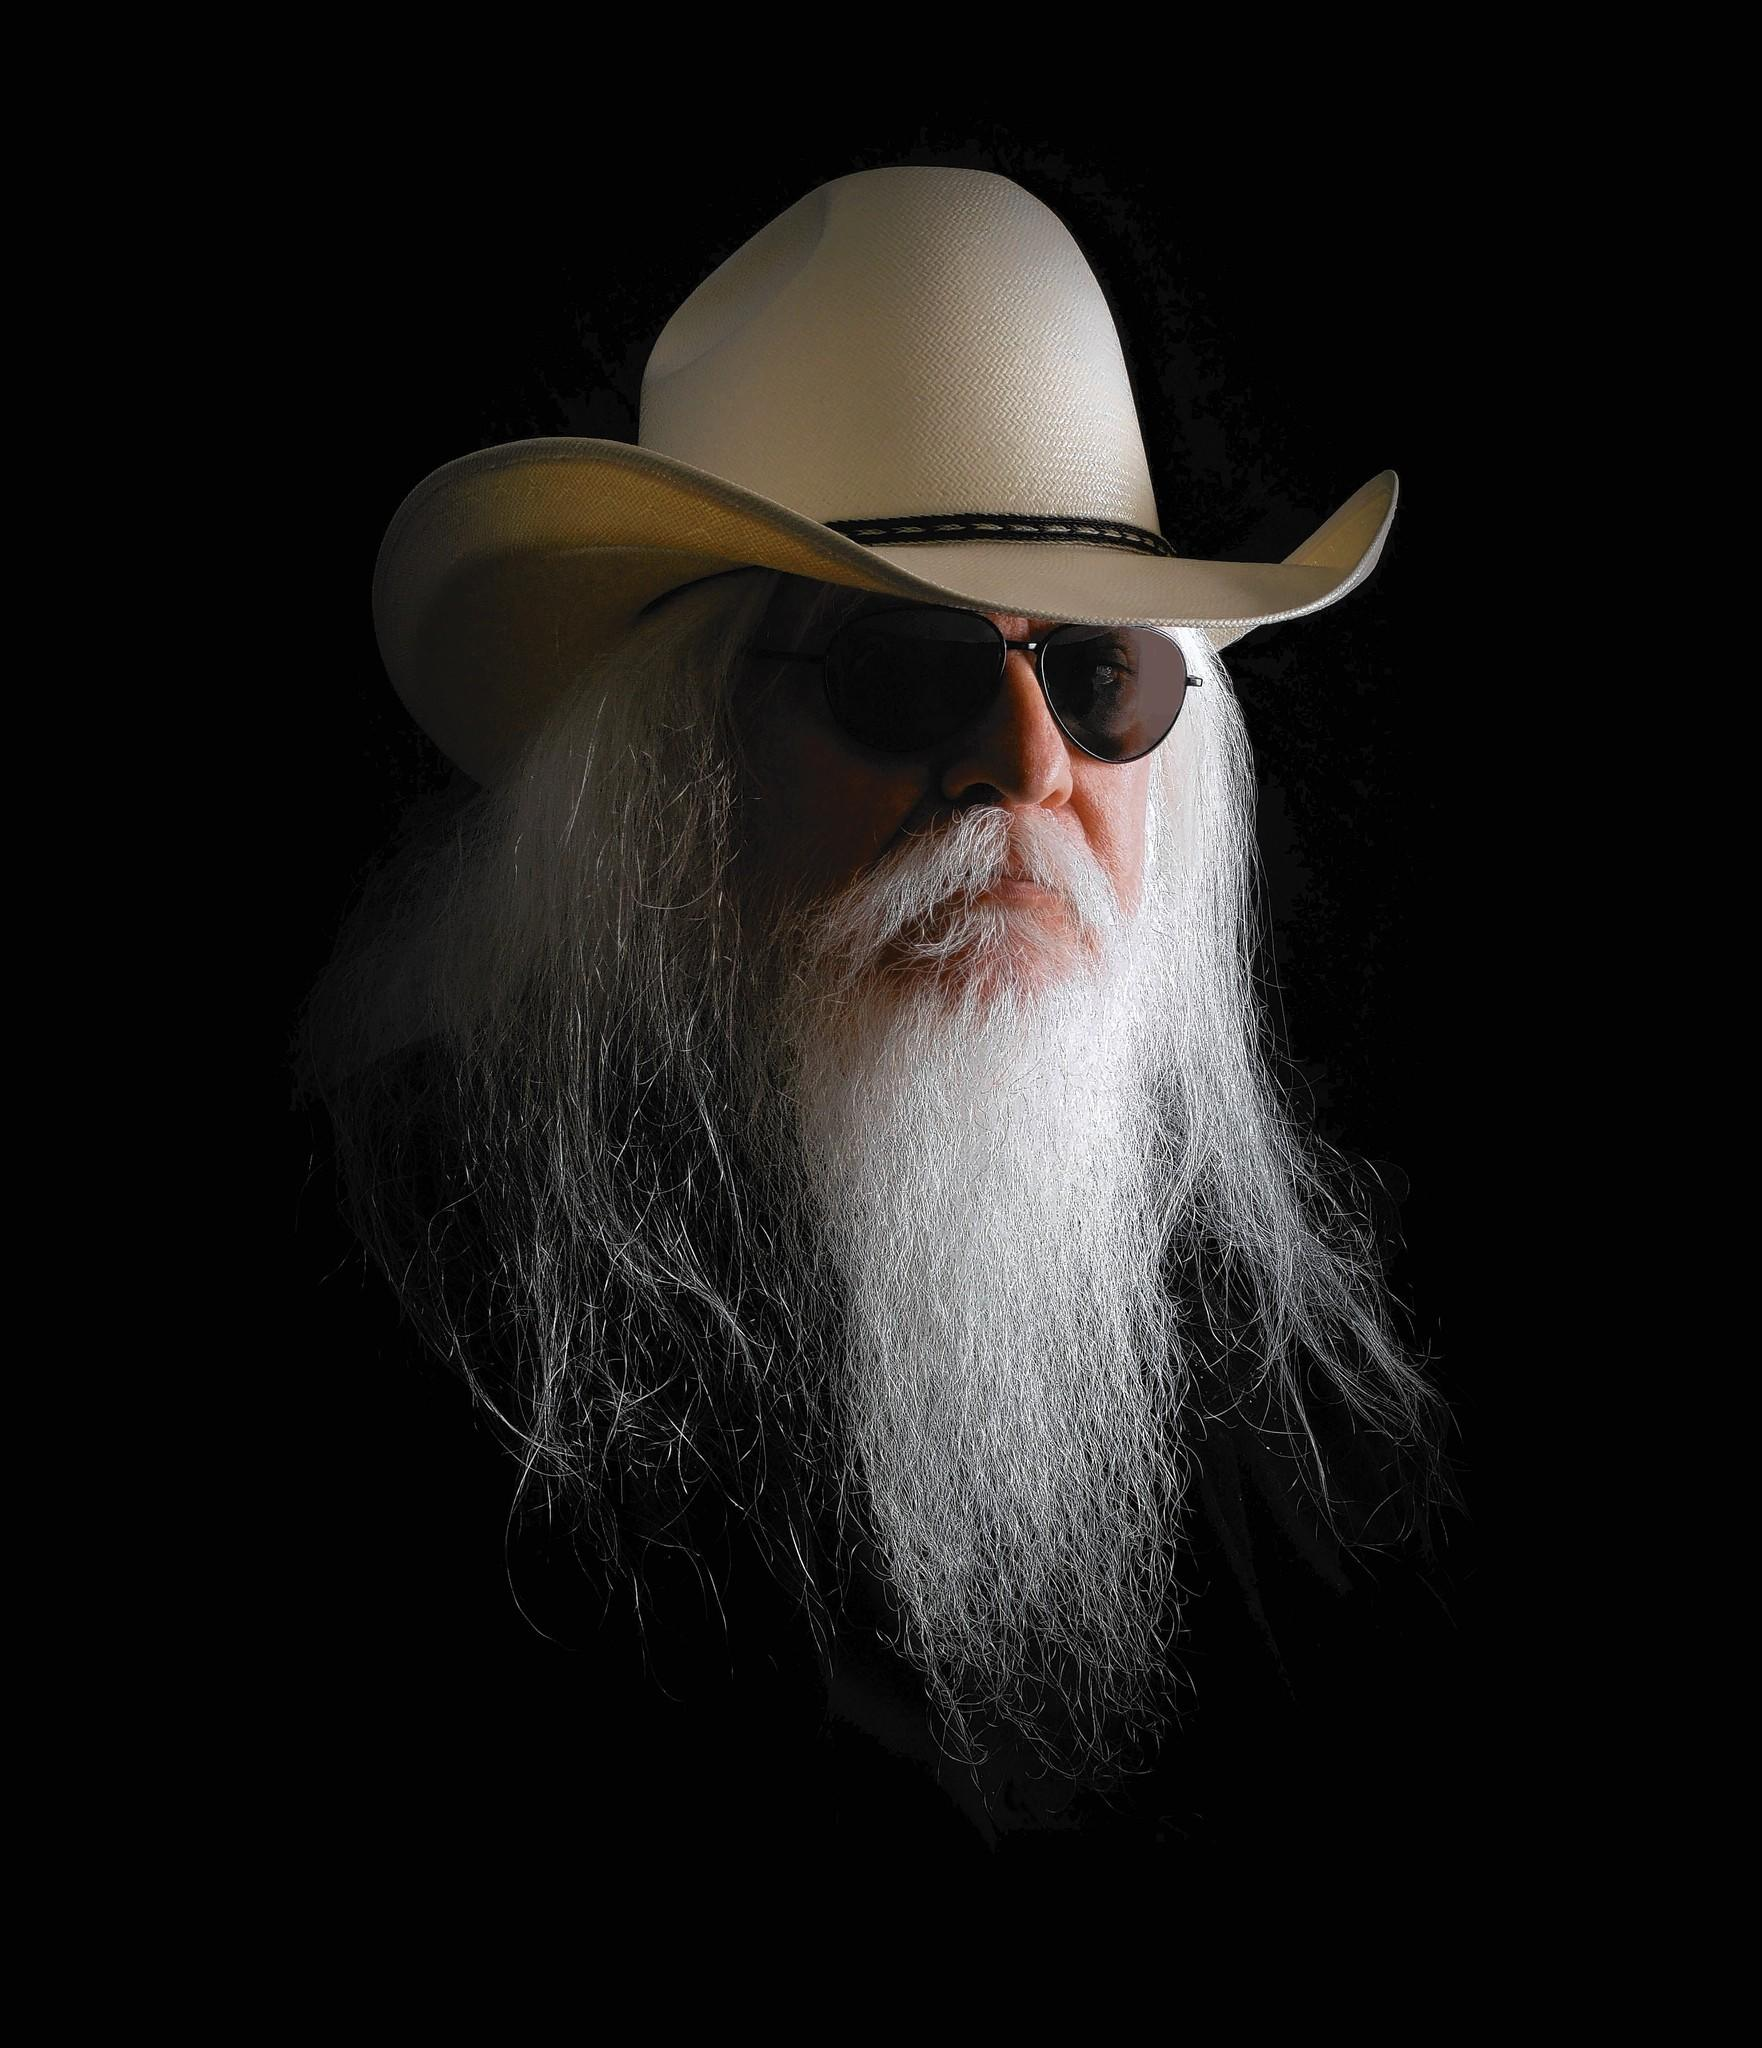 Legendary bluesman Leon Russell will perform Jan. 16 at Plaza Live in Orlando.